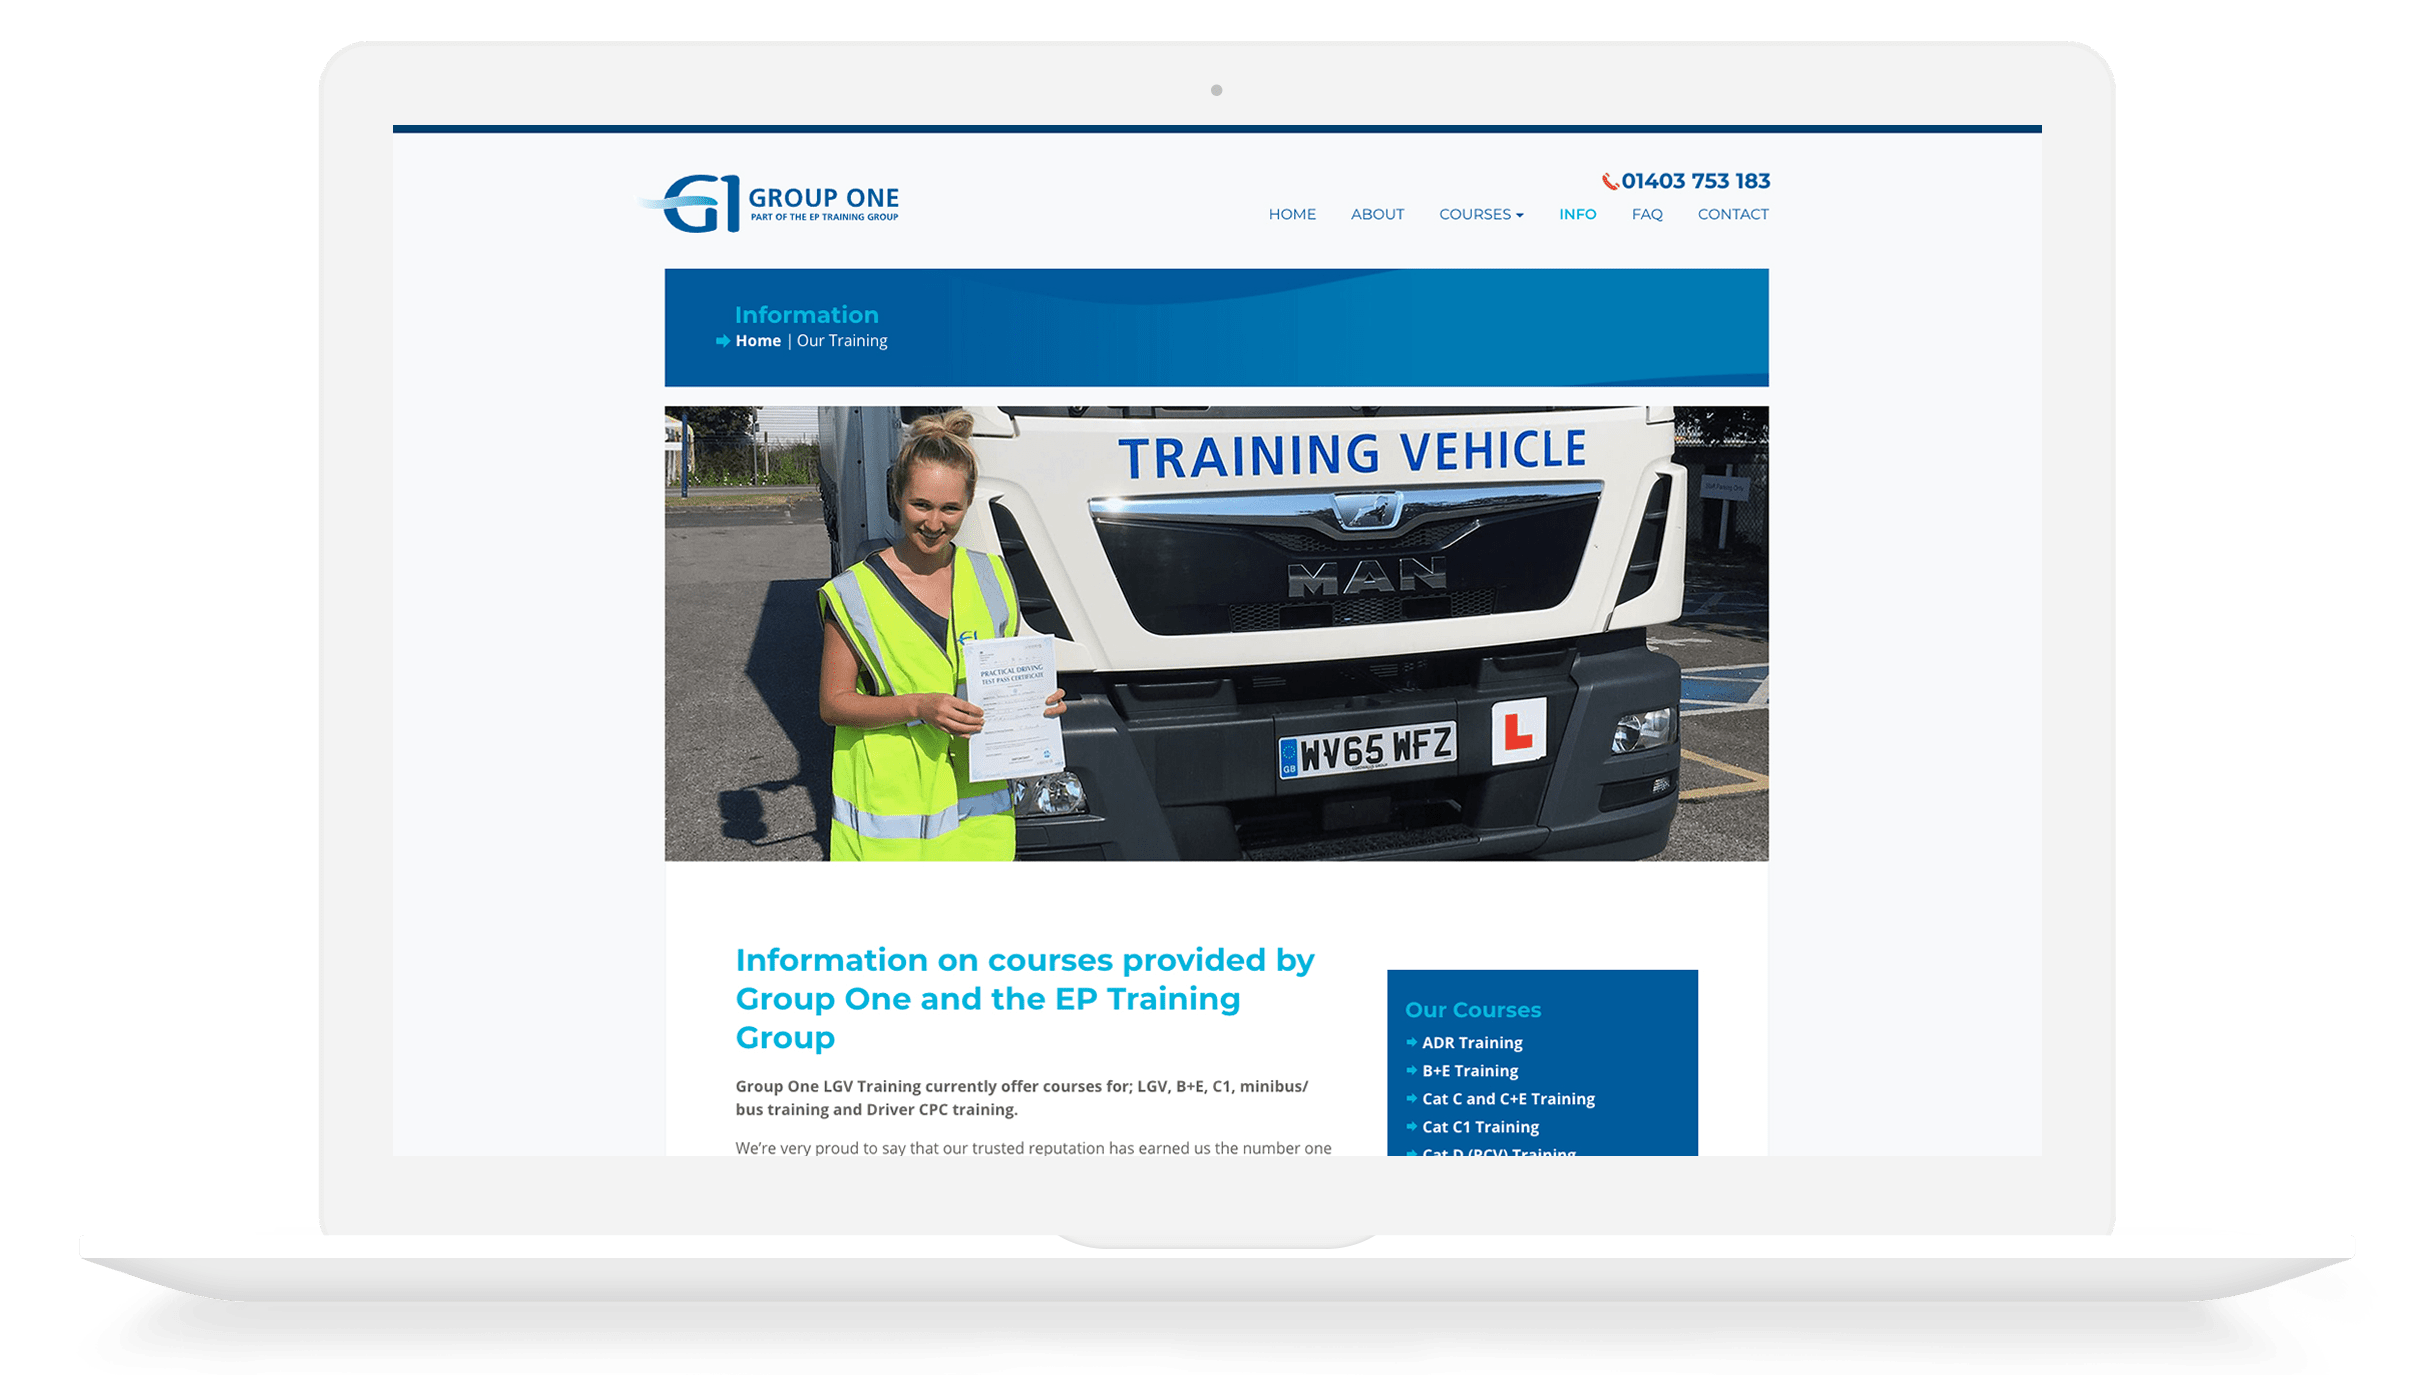 Group One HGV Training